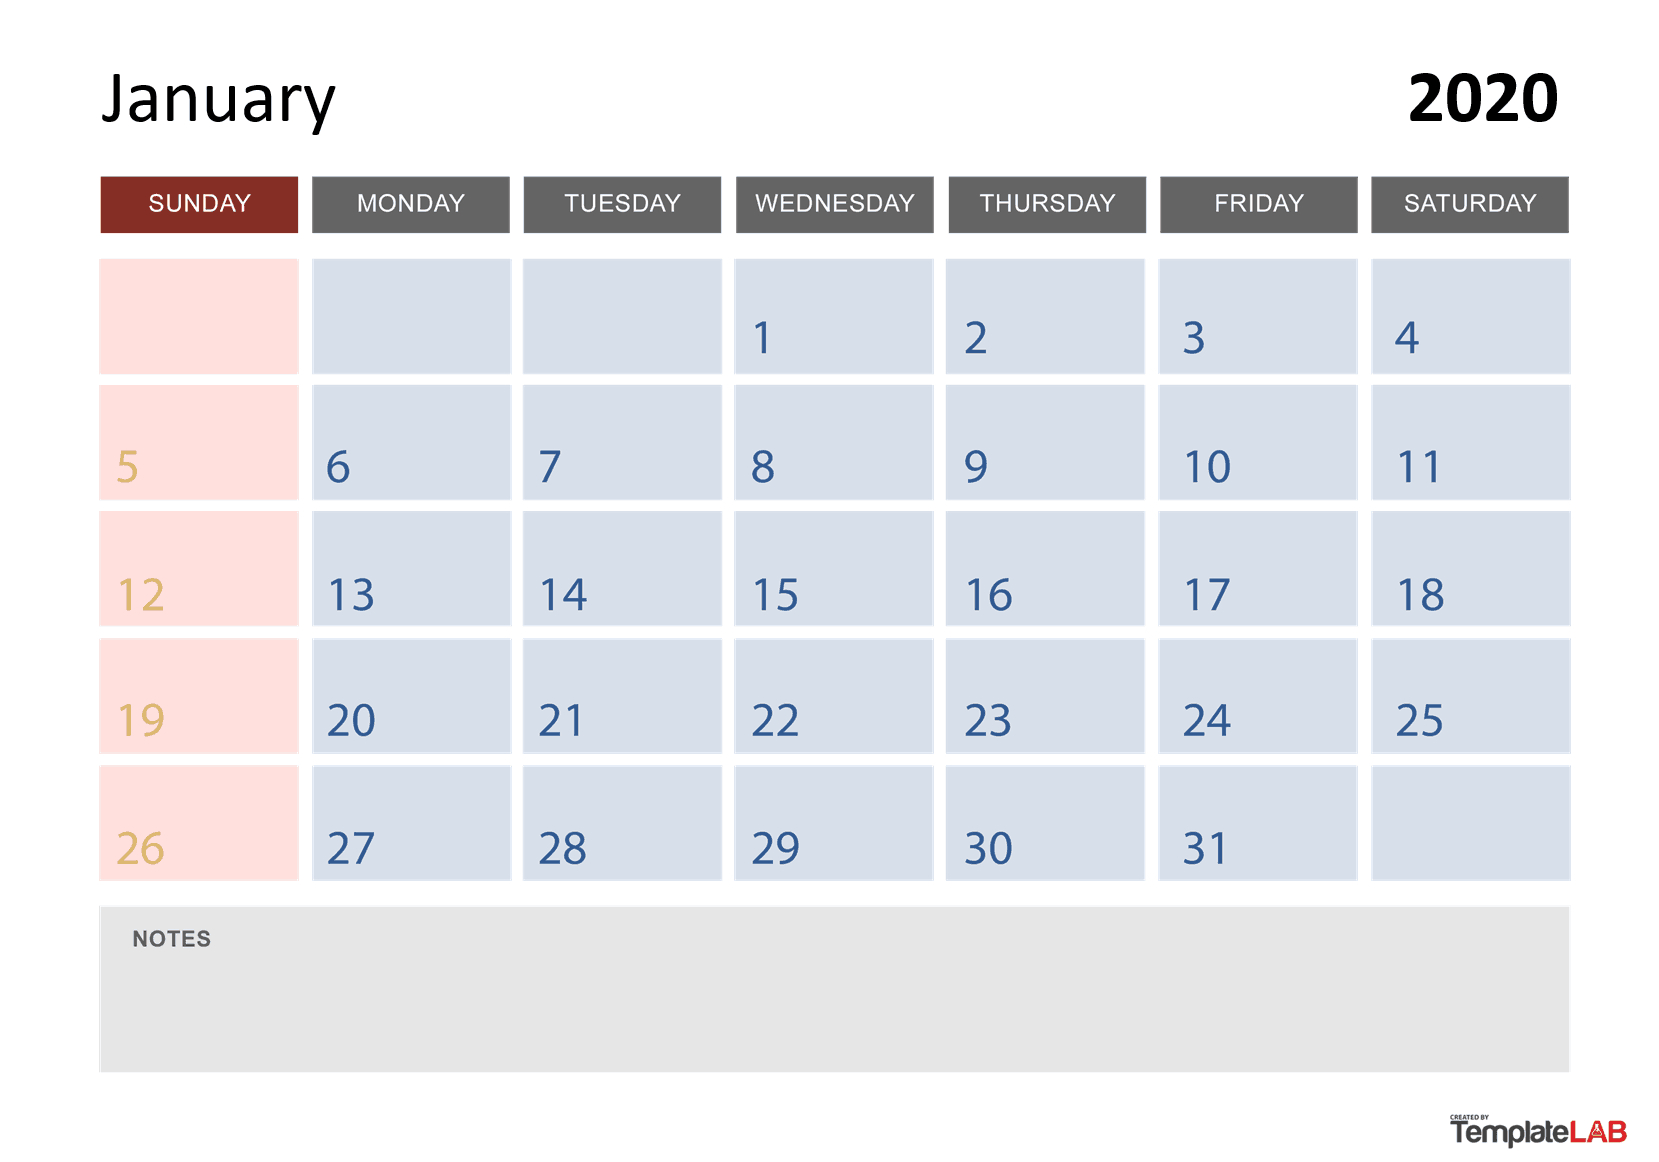 [%2020 Printable Calendars [Monthly, With Holidays, Yearly] ᐅ|2020 Monthly Calendar With Holidays|2020 Monthly Calendar With Holidays%]